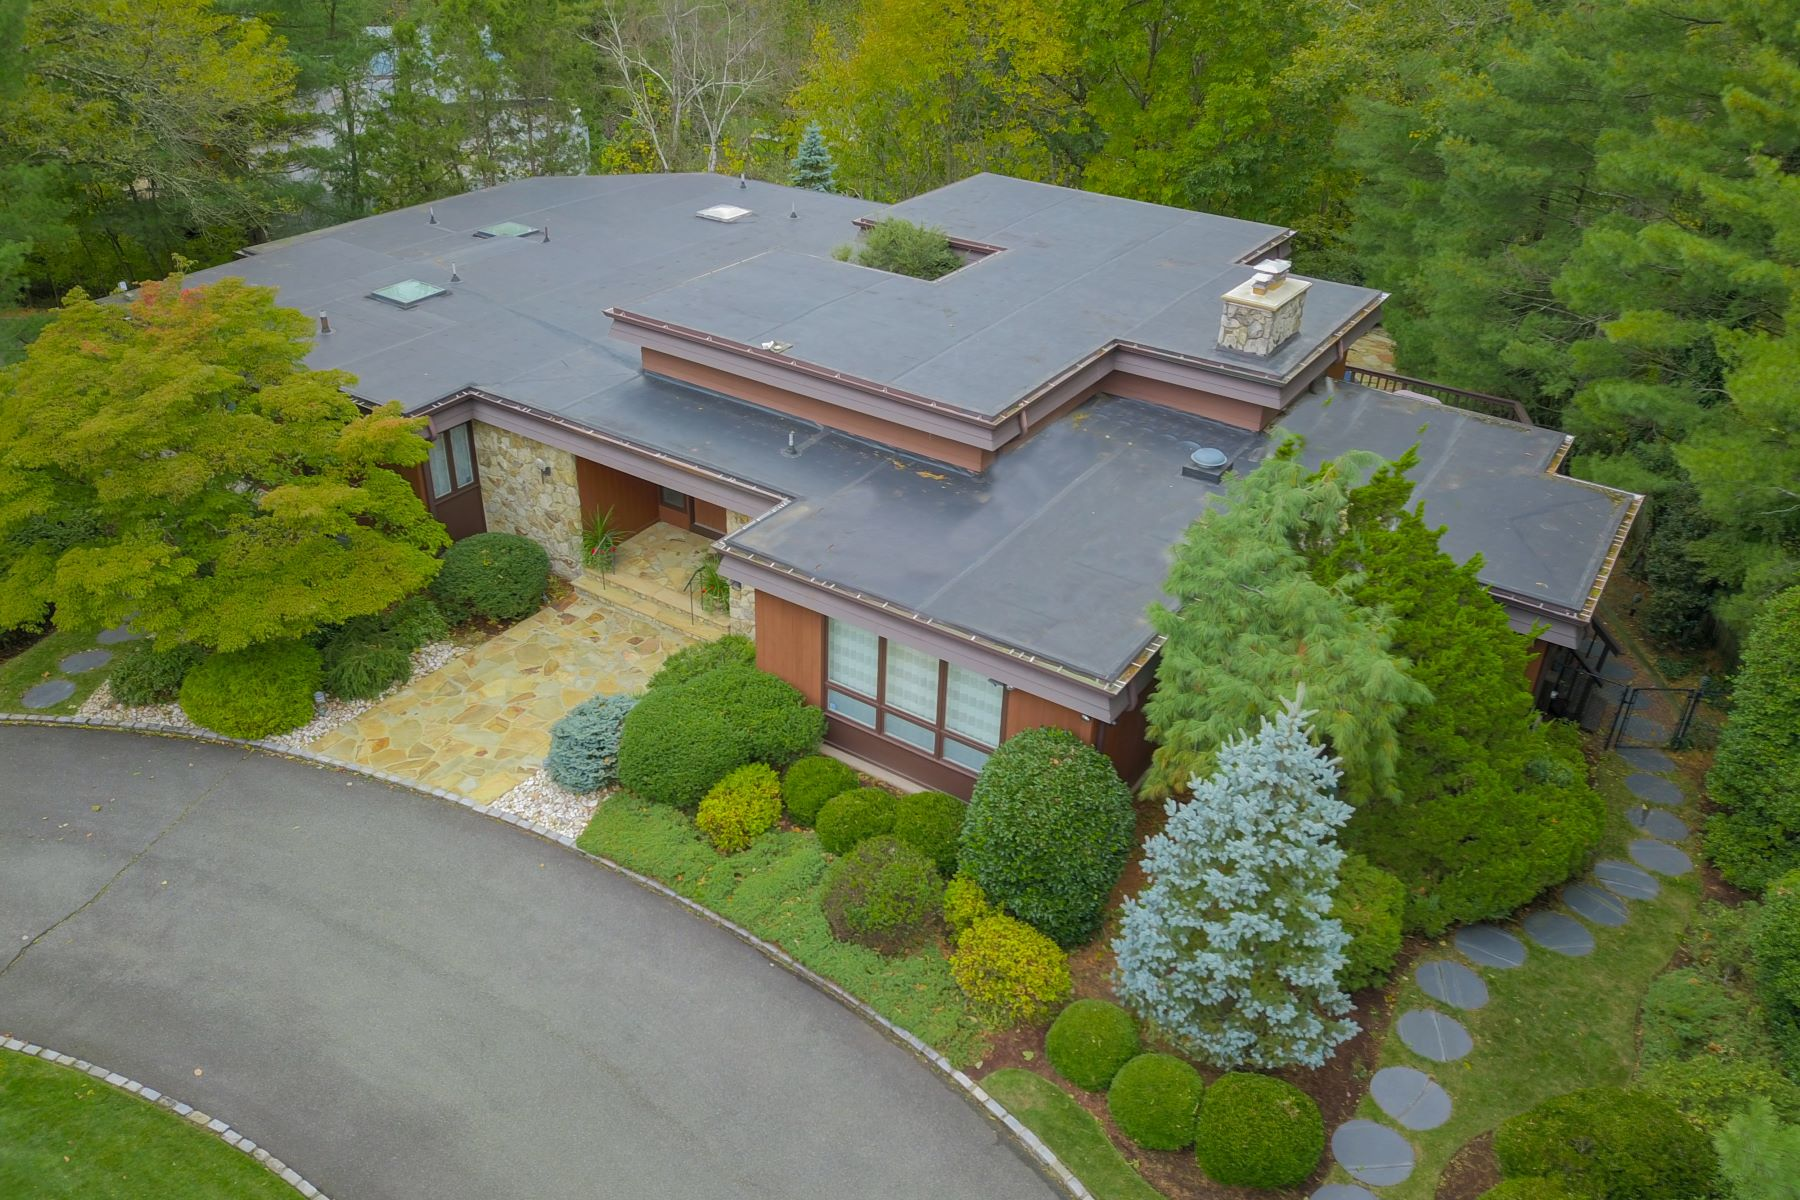 Single Family Homes for Sale at Mid-Century Modern Ranch 21 Watchung Road, Short Hills, New Jersey 07078 United States